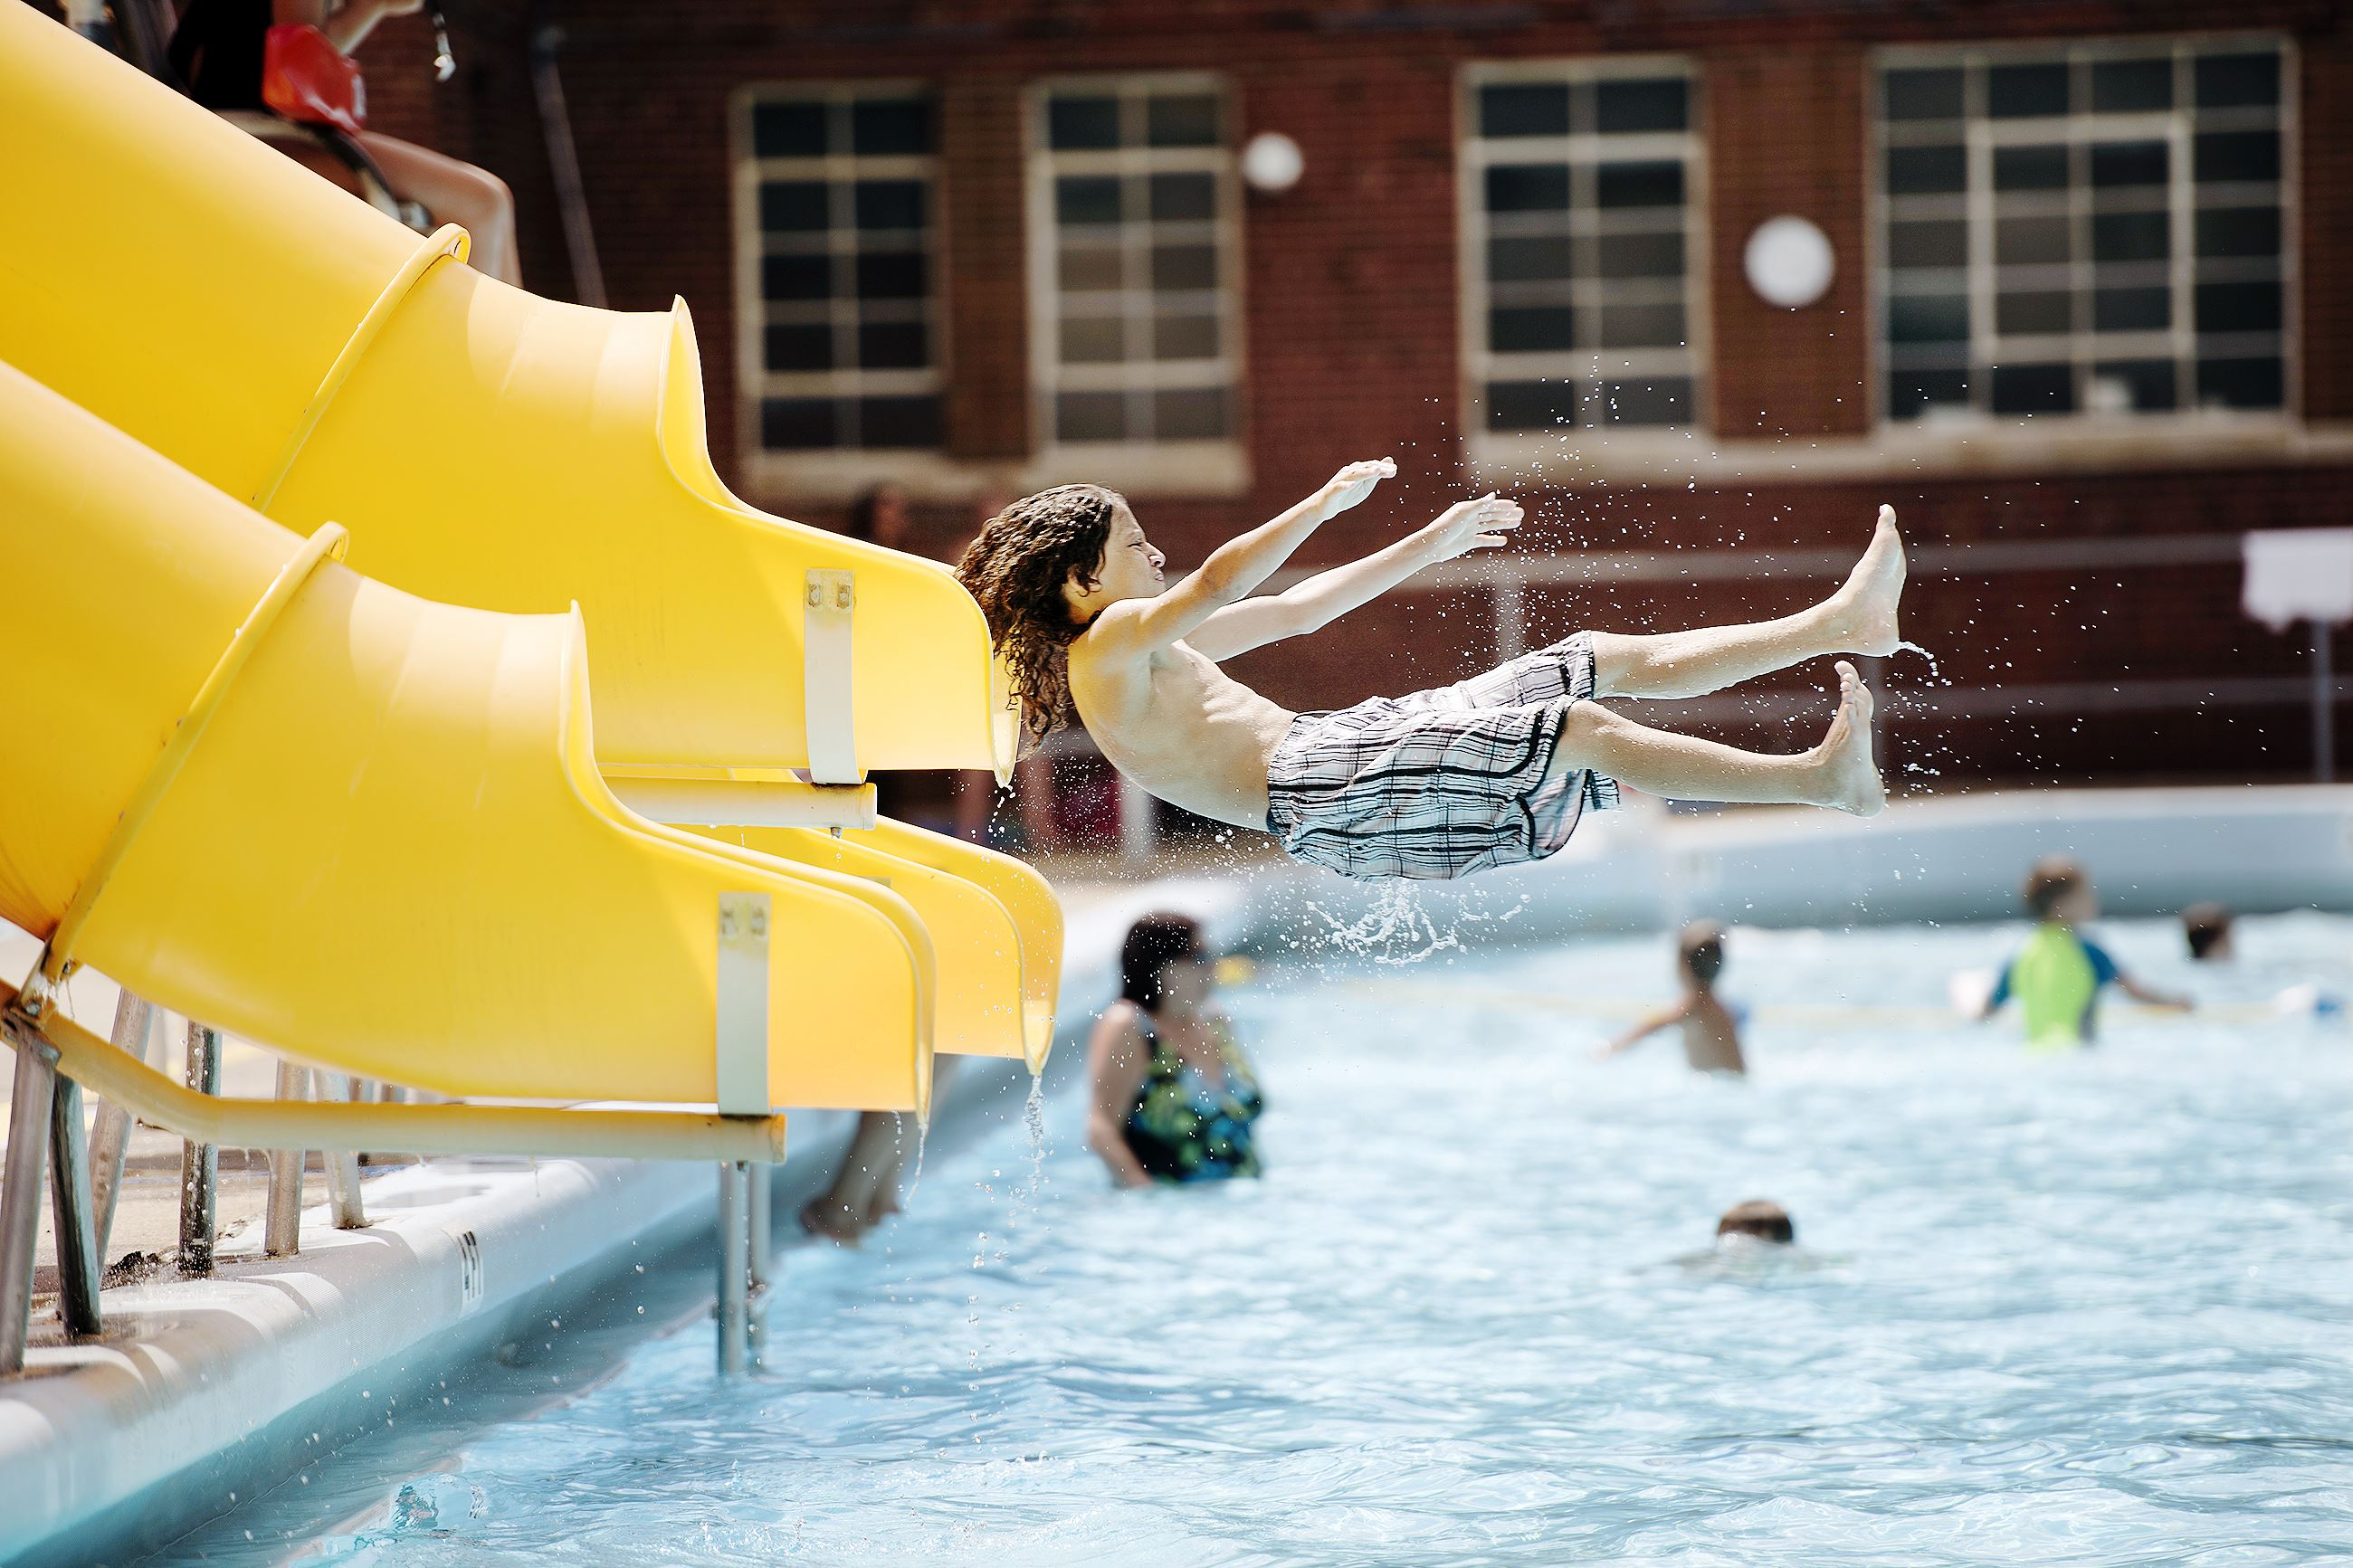 End of summer means the end of county pools pittsburgh post gazette for Local swimming pools with slides